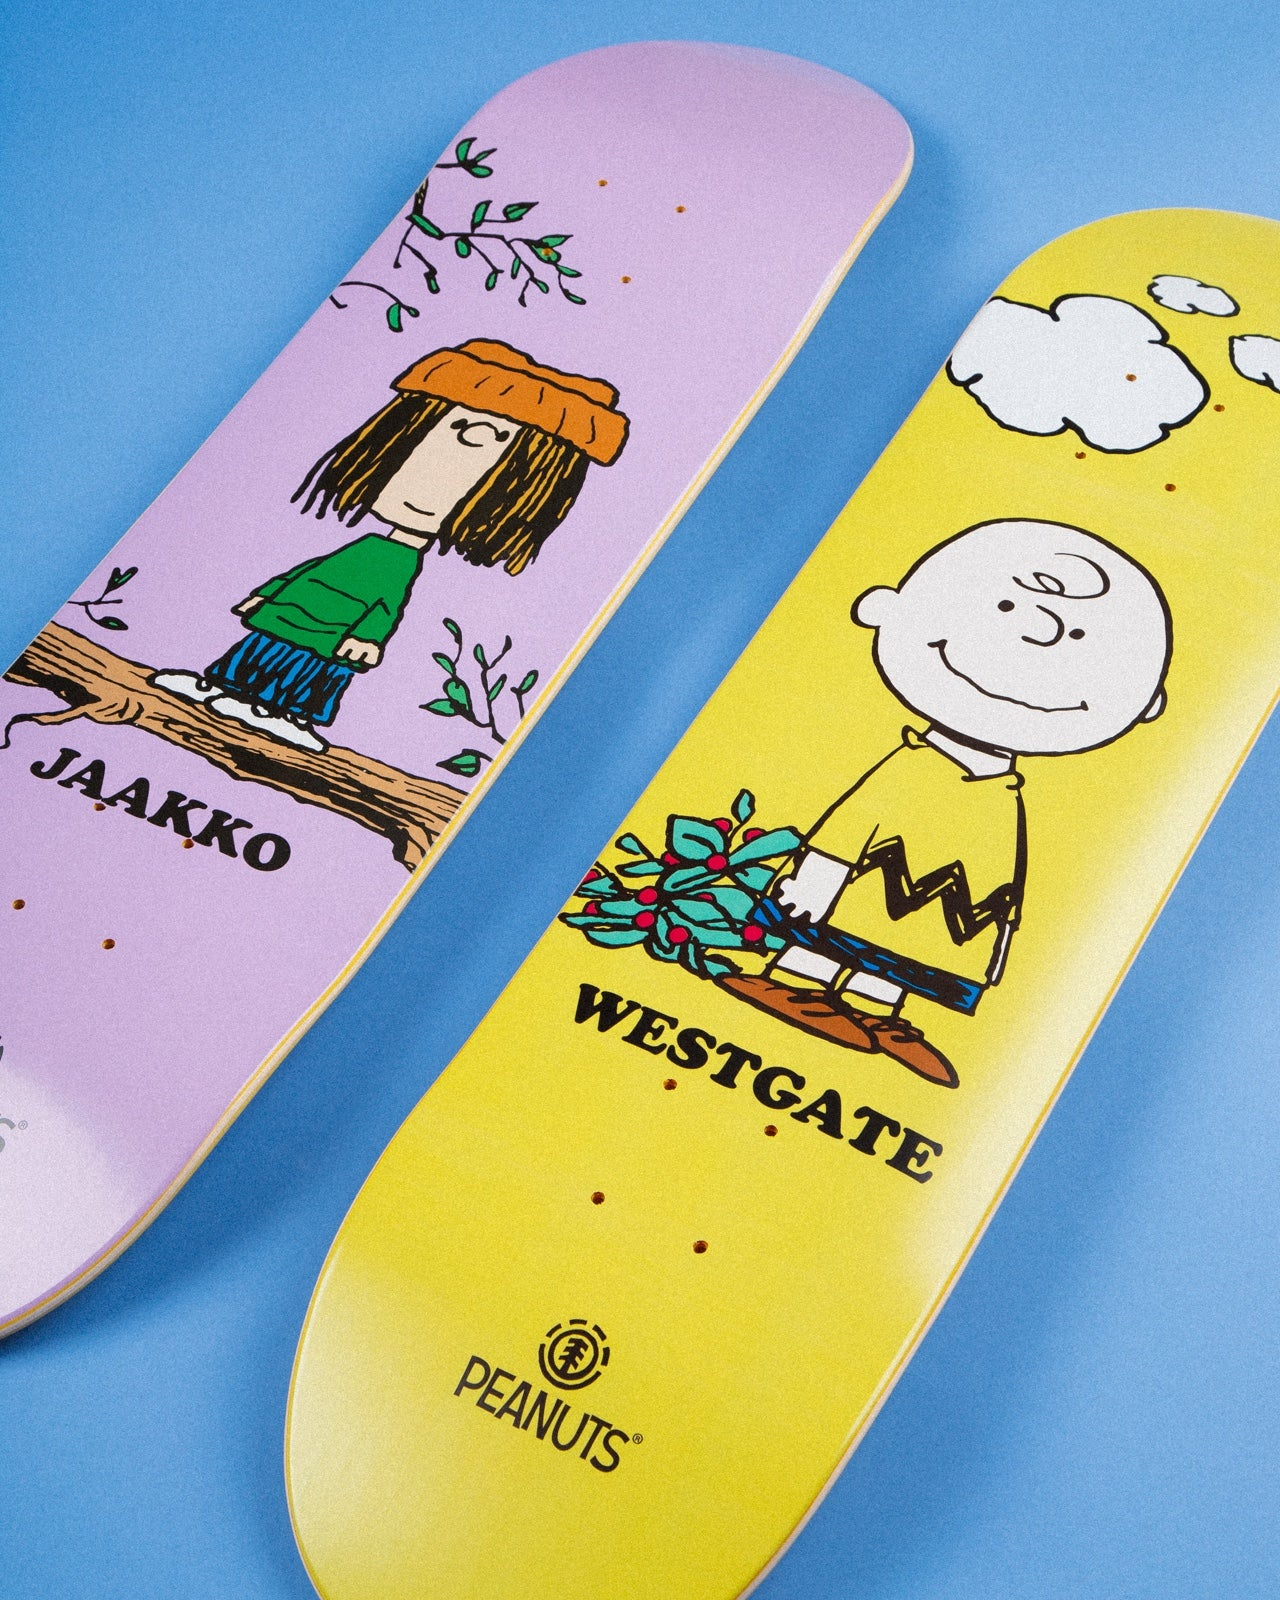 Element x Peanuts at Two Seasons